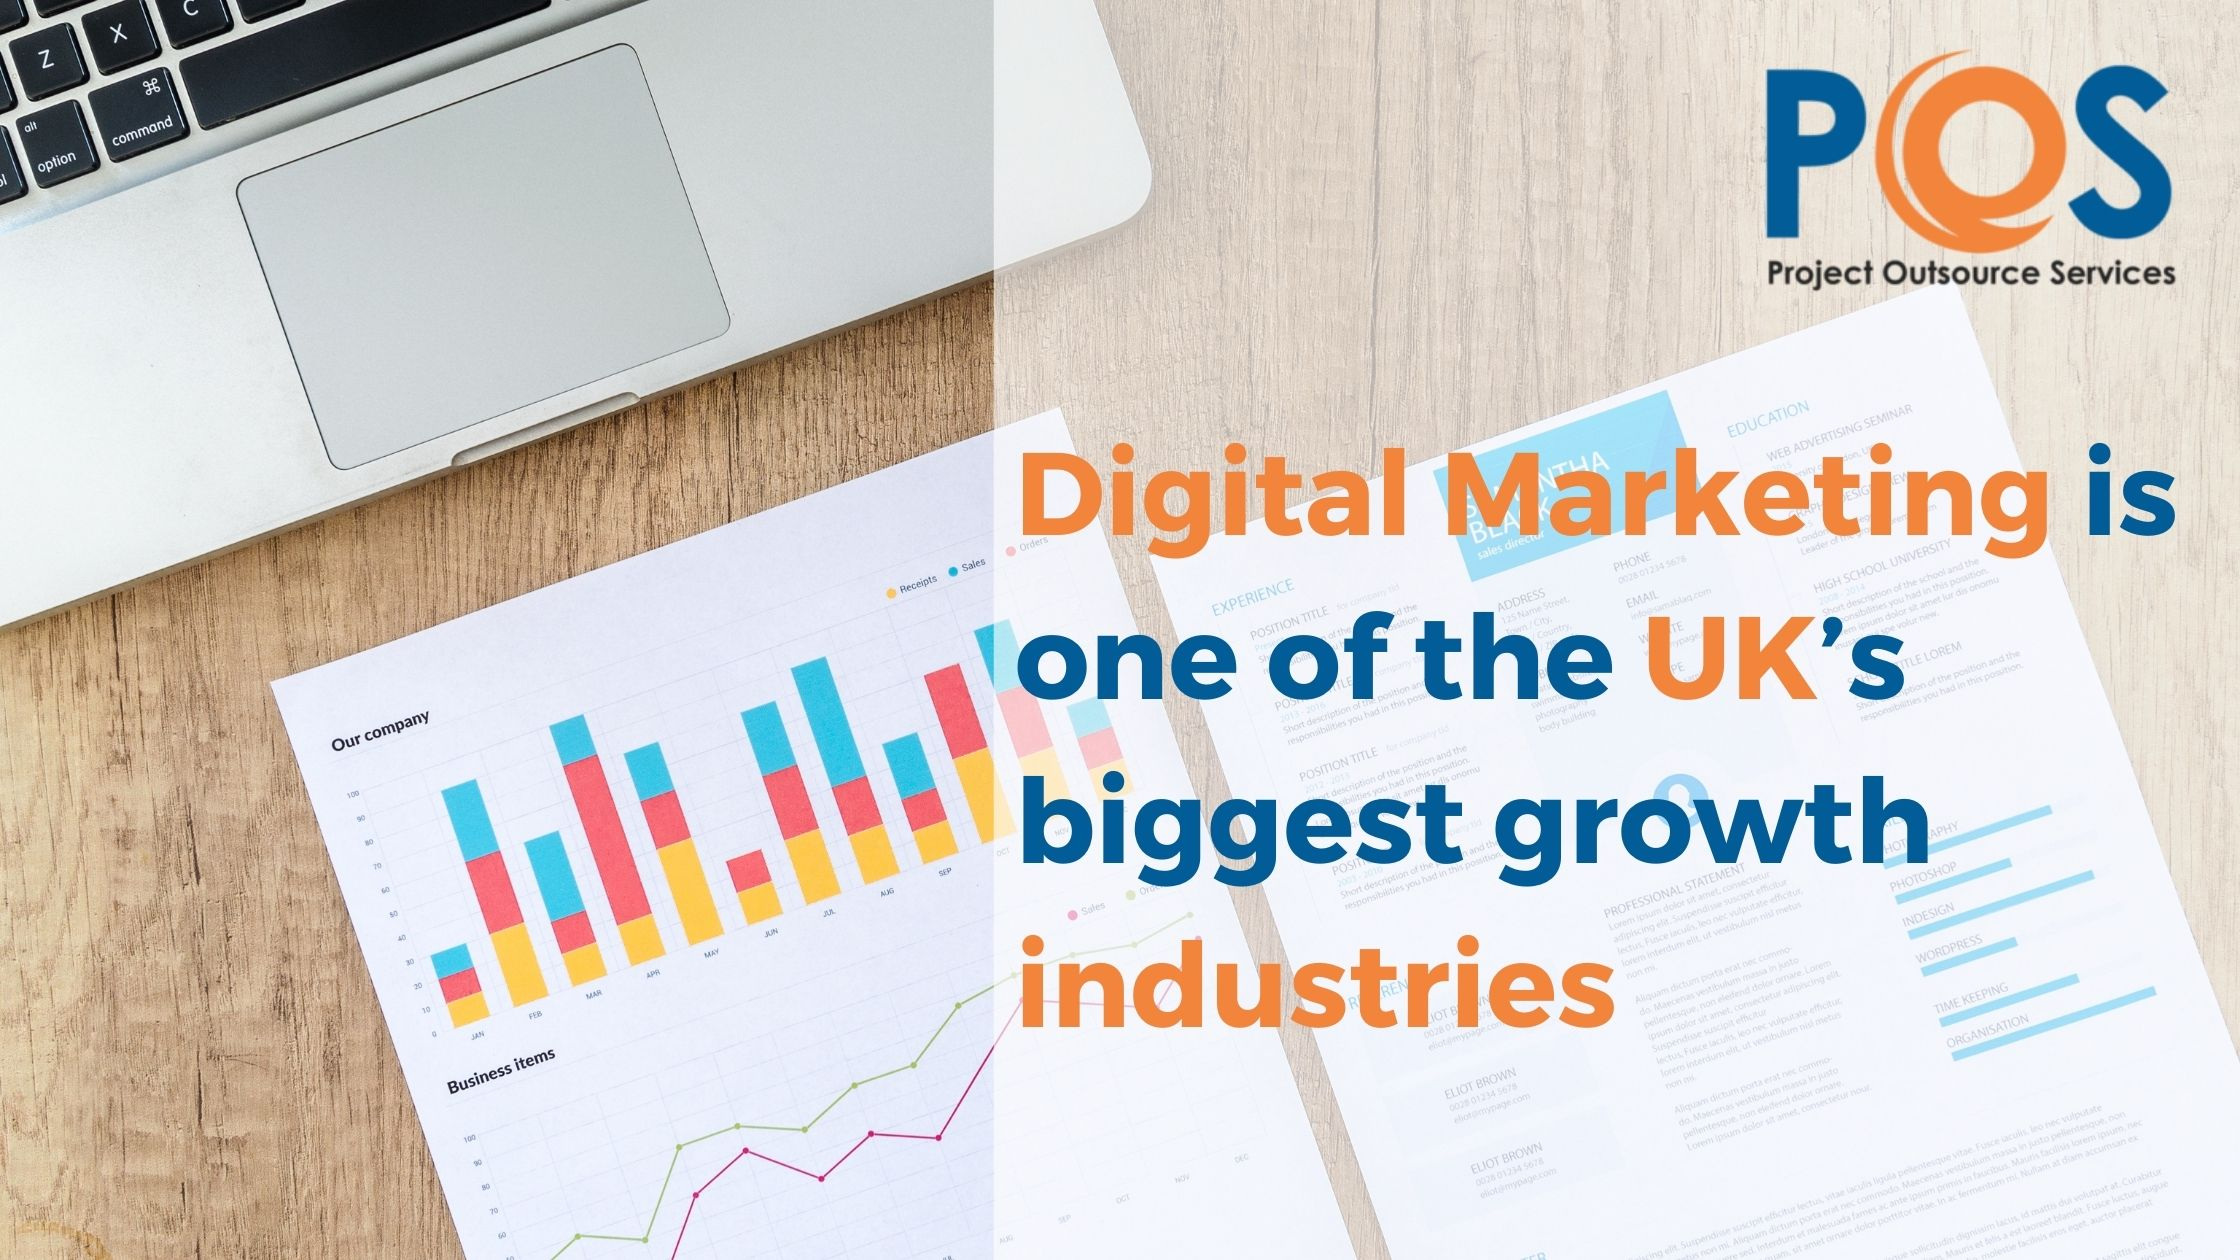 Digital Marketing is One of the UK's Biggest Growth Industries